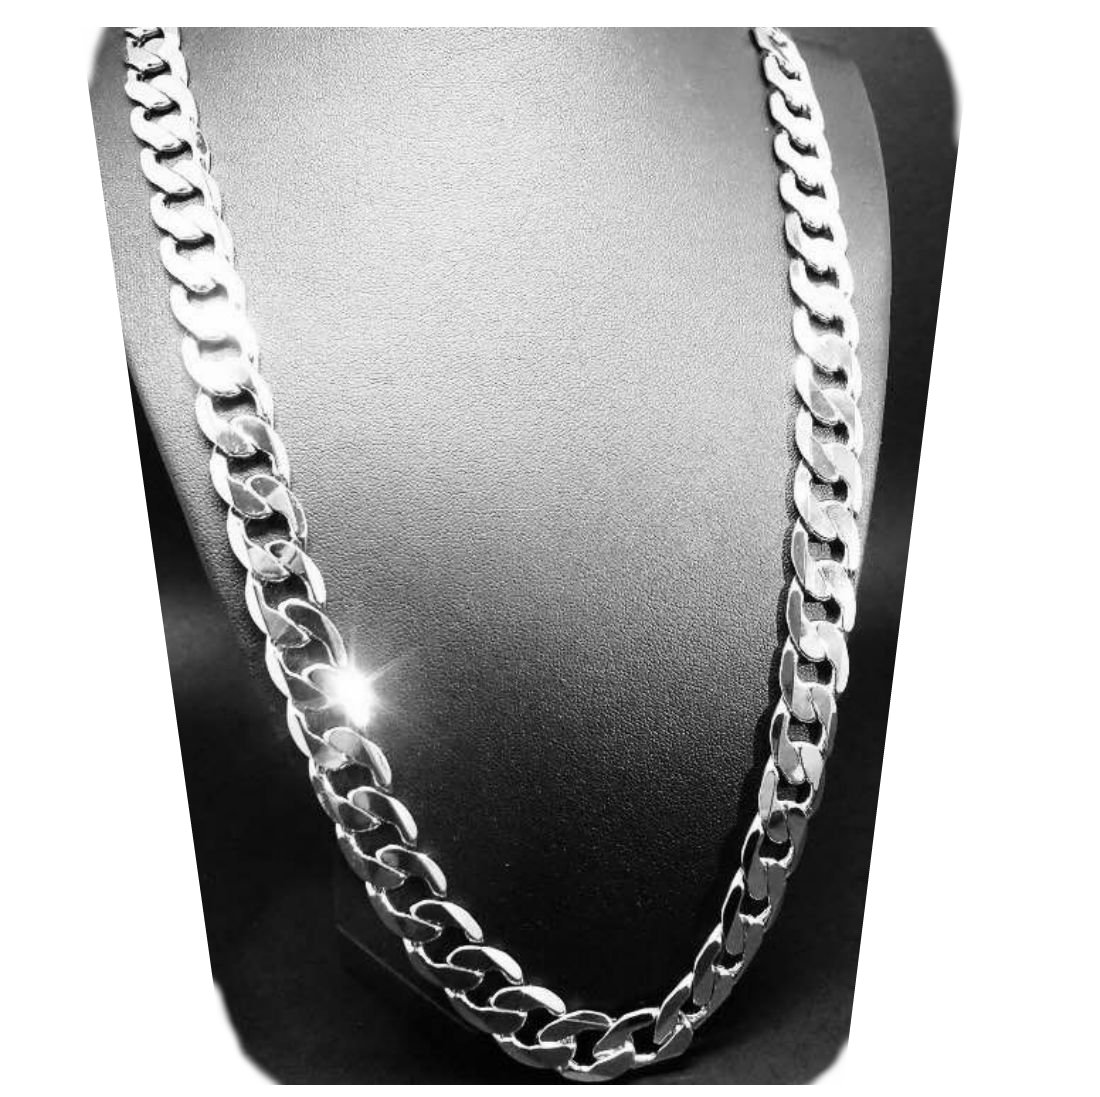 Gold chain necklace 5mm 18K White Gold Diamond cut Smooth Cuban Link with a Warranty Of A LifeTime USA made! (27)